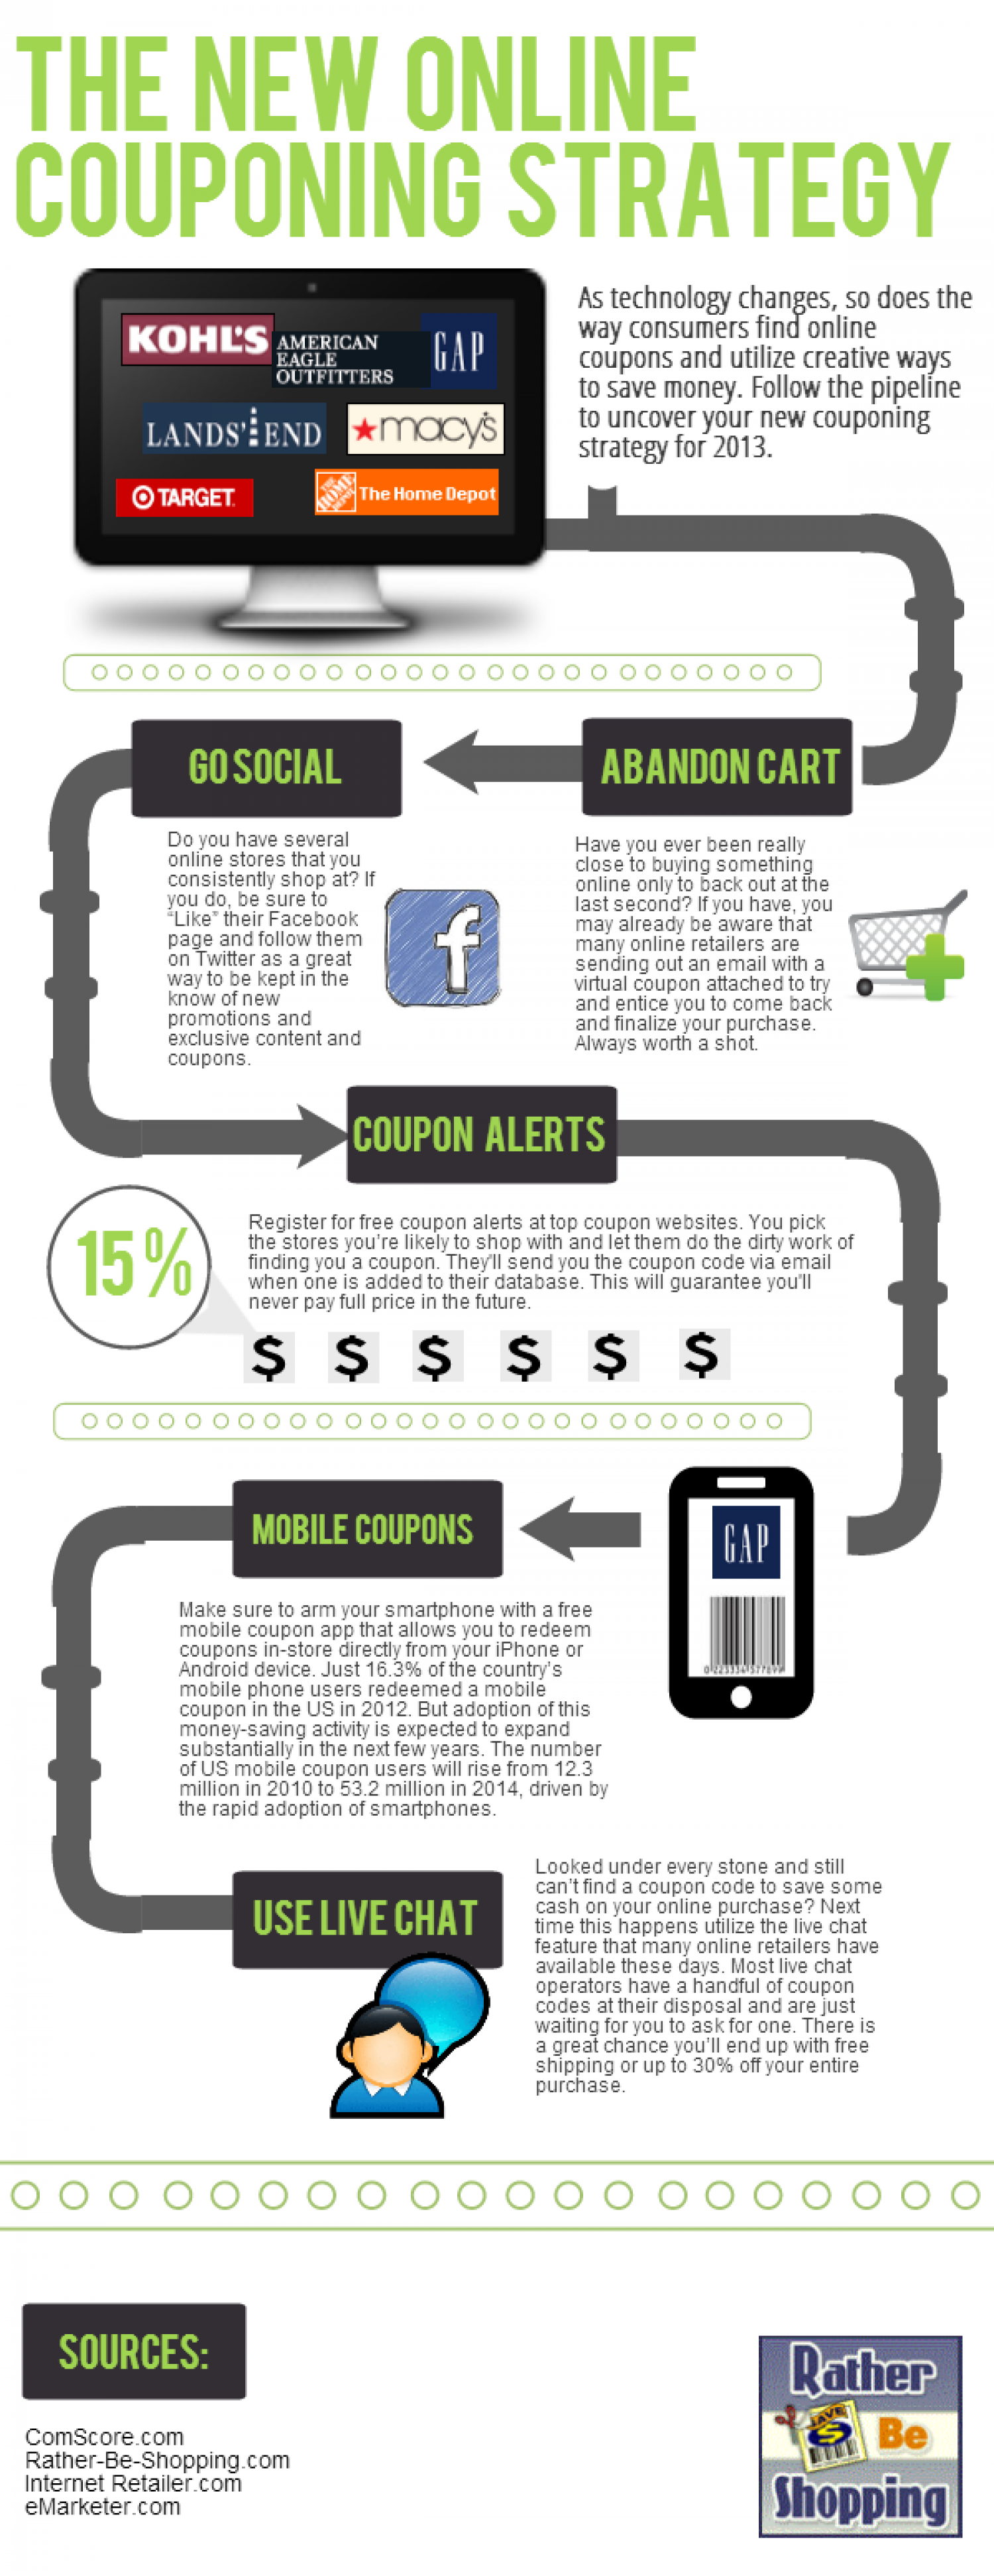 The New Online Coupon Strategy for 2013 Infographic